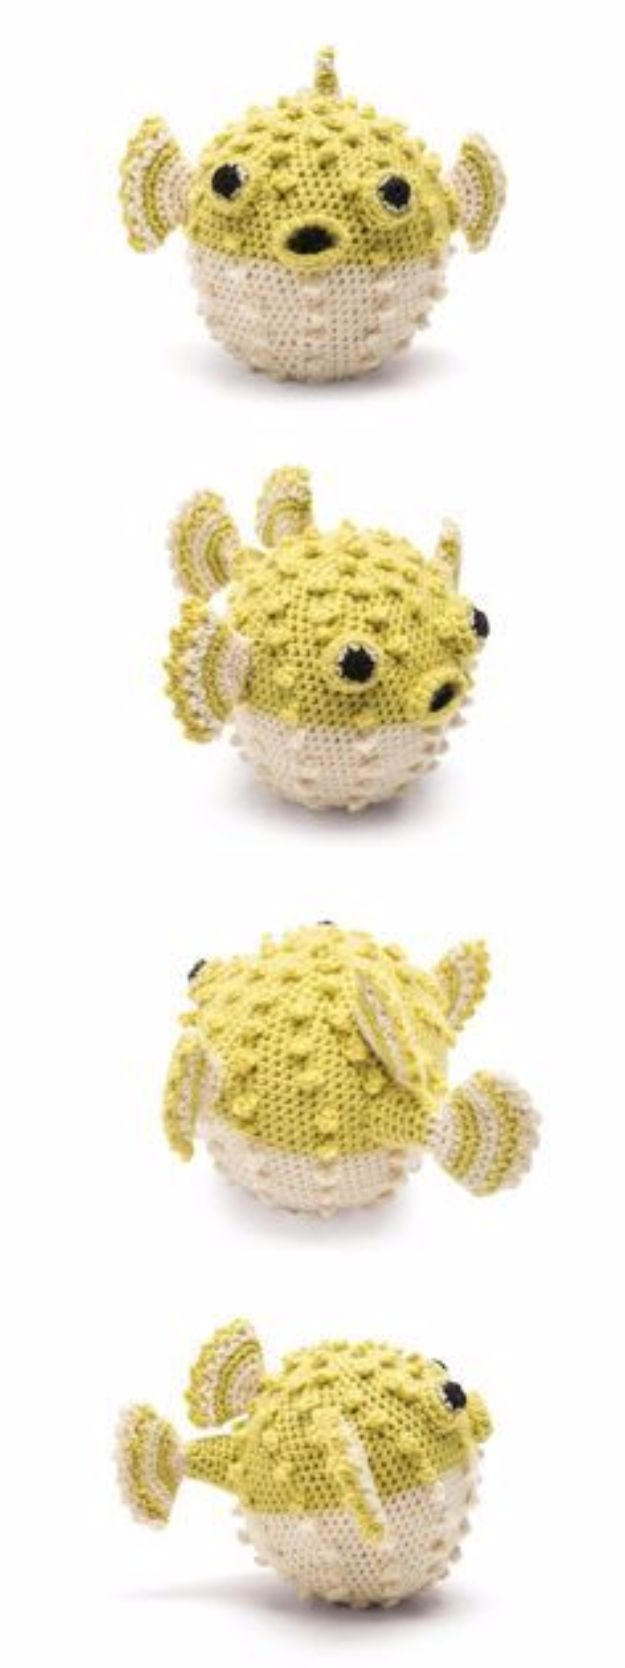 Free Amigurumi Patterns For Beginners and Pros - Puffer Fish Amigurumi - Easy Amigurimi Tutorials With Step by Step Instructions - Learn How To Crochet Cute Amigurimi Animals, Doll, Mobile, Mini Elephant, Cat, Dinosaur, Owl, Bunny, Dog - Creative Ways to Crochet Cool DIY Gifts for Kids, Teens, Baby and Adults #amigurumi #crochet